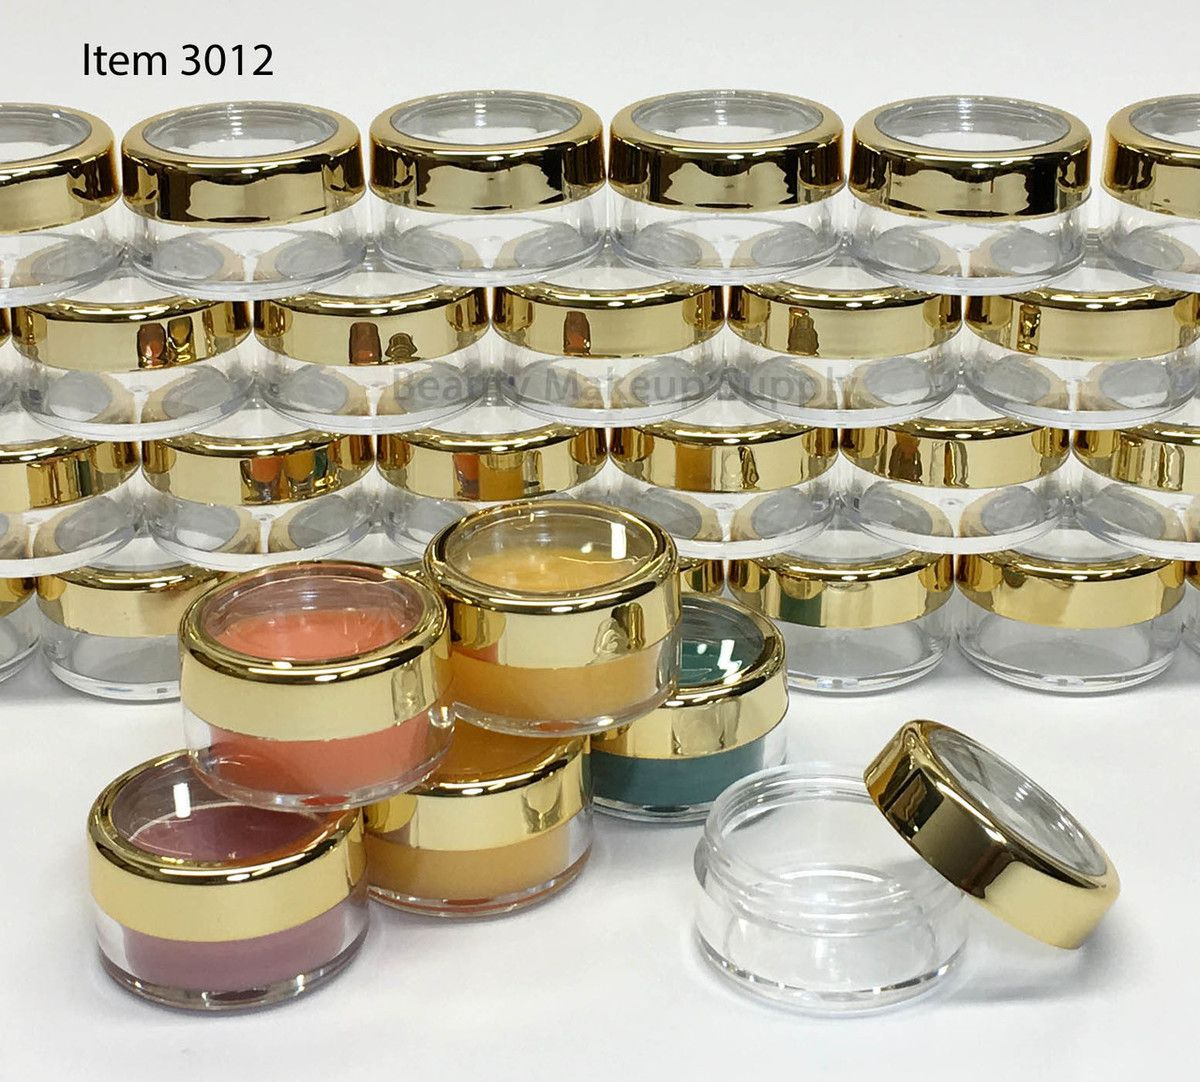 Cosmetic Jars Plastic Beauty Containers 10 Gram Gold Trim Acrylic Window Caps Sku Cosmetic Jars Cosmetic Containers Lip Balm Containers